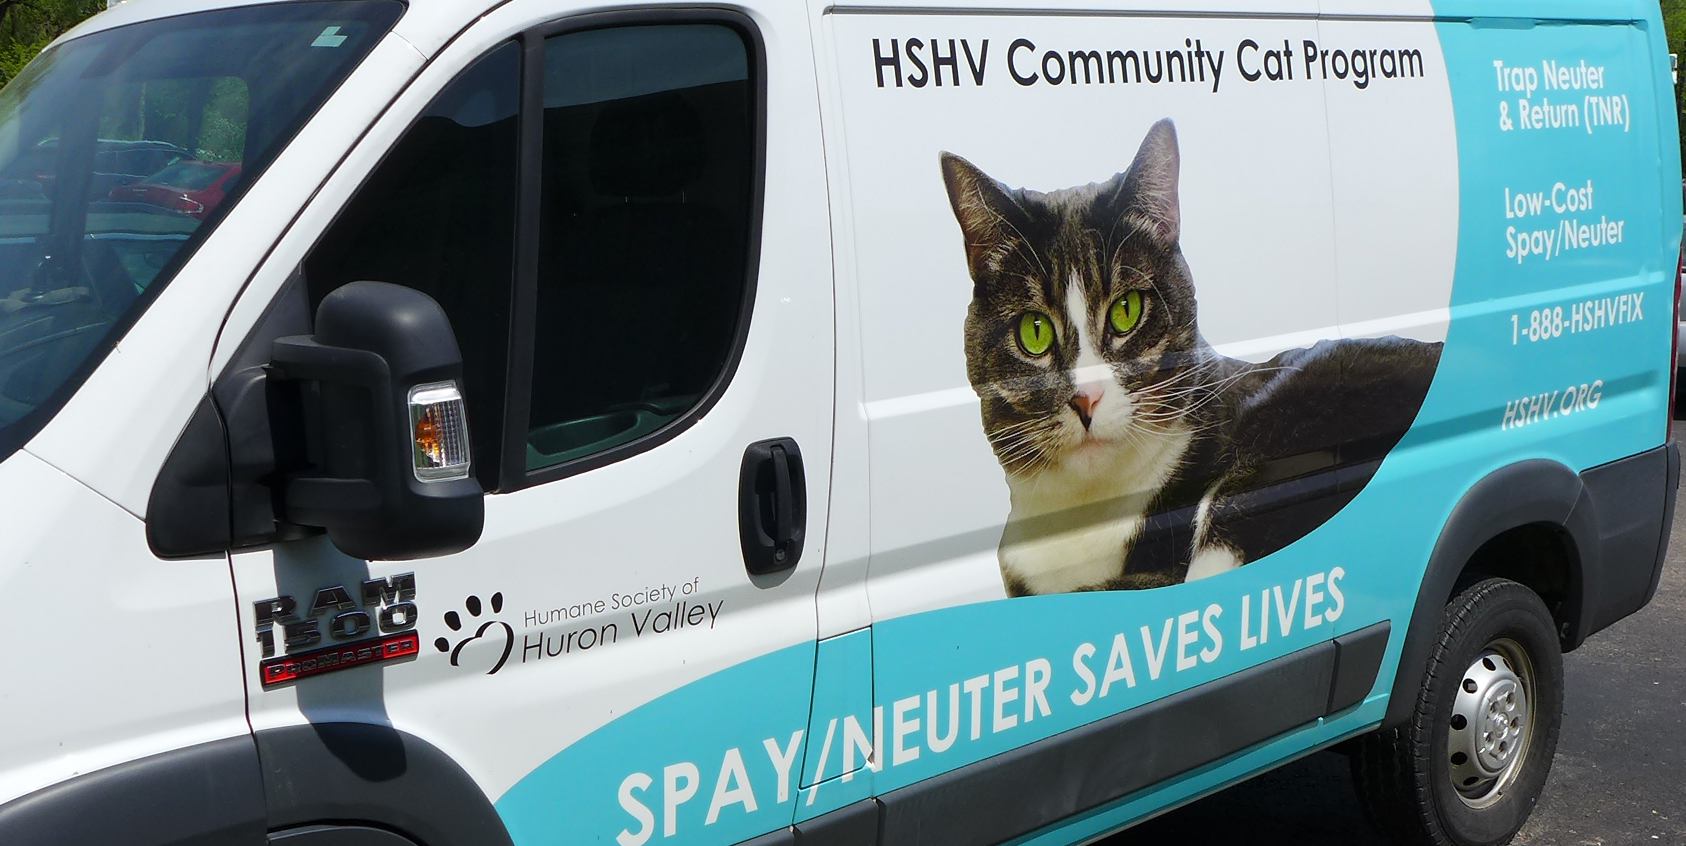 HSHV Community Cat Program van